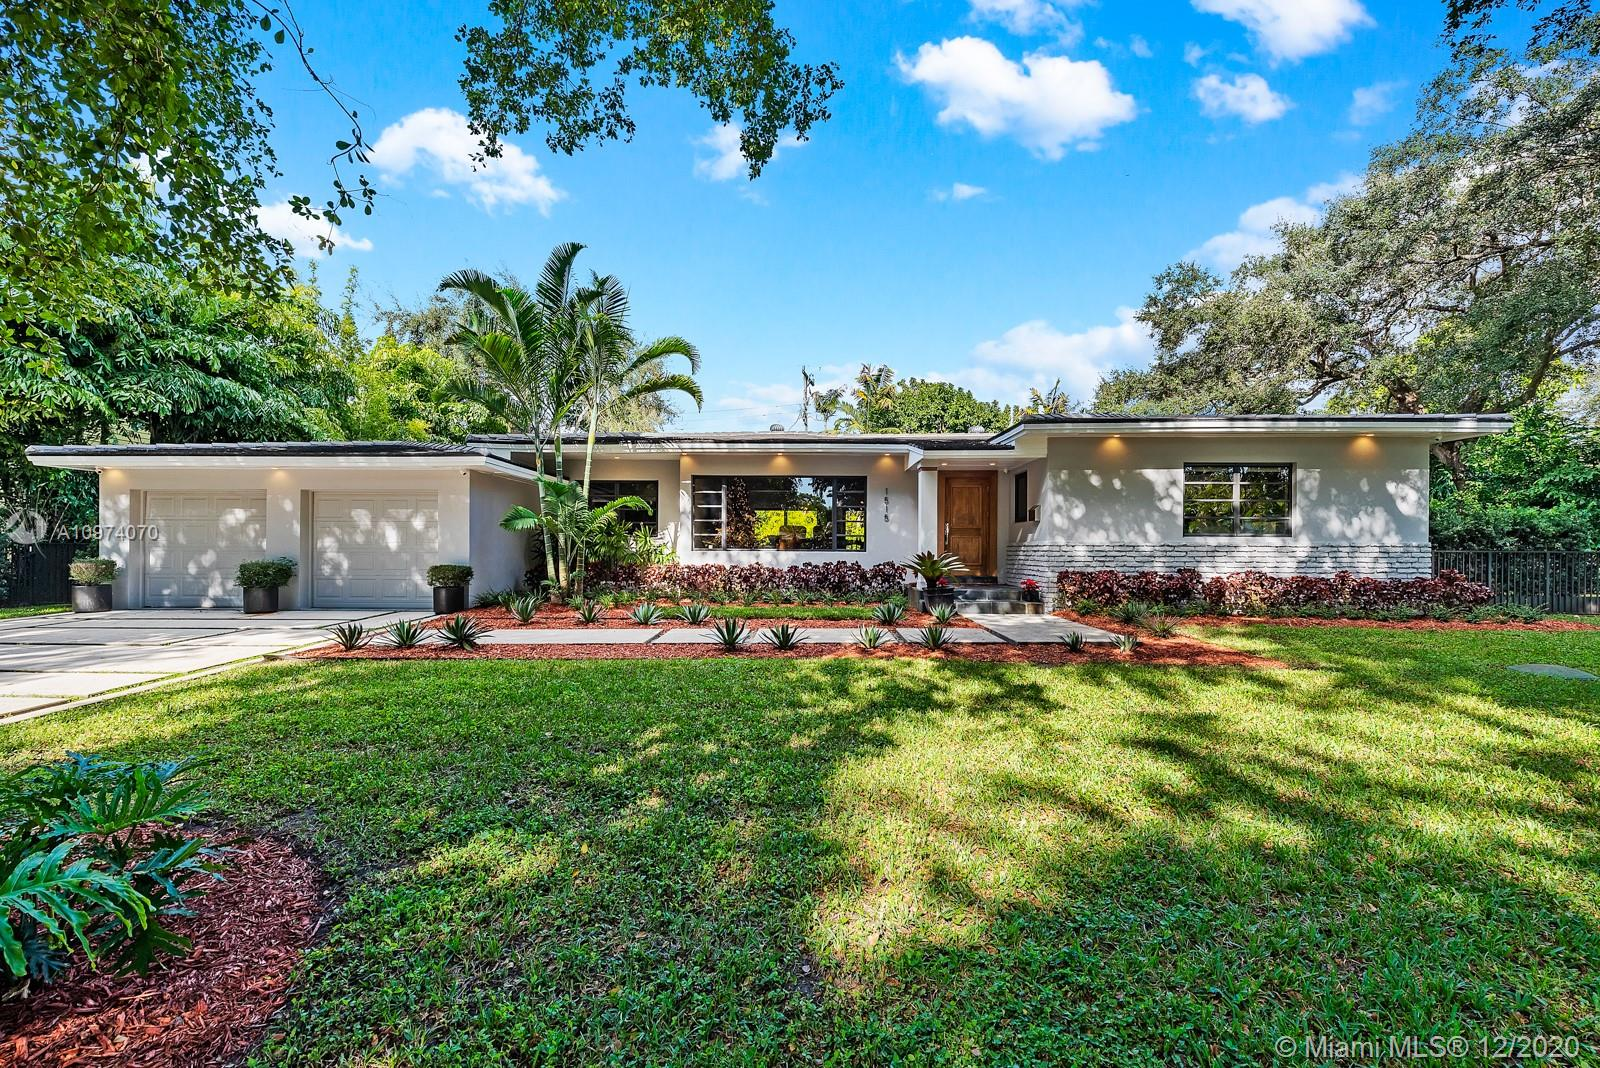 Completely remodeled 3 bedroom, 2 bath homes in sought out Coral Gables. Beautiful park right across the street. Filled with light, this open floor plan home features hardwood floors, a custom chandelier in the dining area, custom wood cabinetry, Thermador Gas range, stainless steel appliances, oversized island with quartz countertops. Bathrooms are completely updated with marble floors. Master featuring his/hers sink, steam feature in the shower with a door to the pool, jets and built in rain shower head. Indoor laundry room with sink, second dishwasher. Smart home with indoor/outdoor speakers, built-in alarm system, exterior cameras. New exterior paint, landscaping, and newer roof and new AC unit. Well water for irrigation and auto-sprinklers. Additional lot is included with the home.